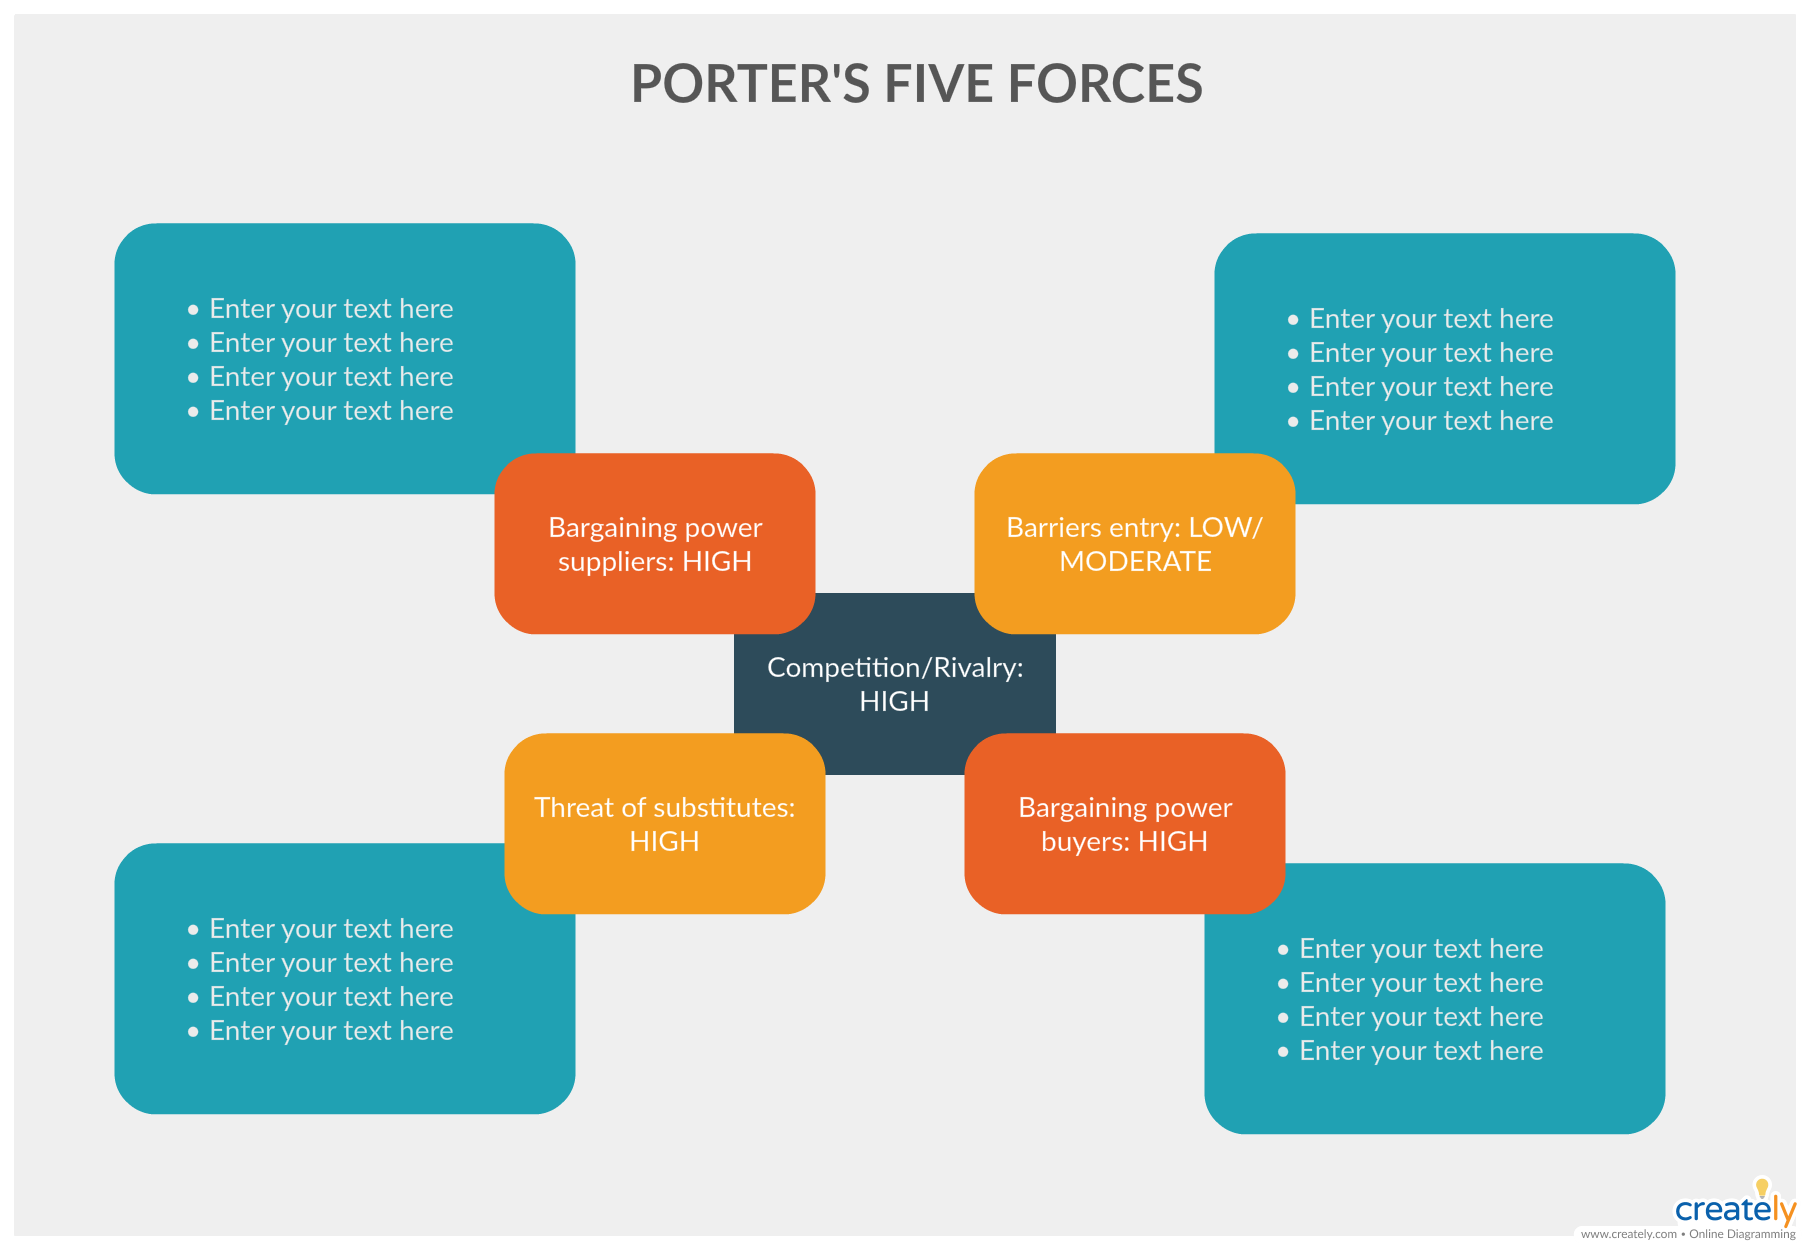 Porters Five Forcesysis